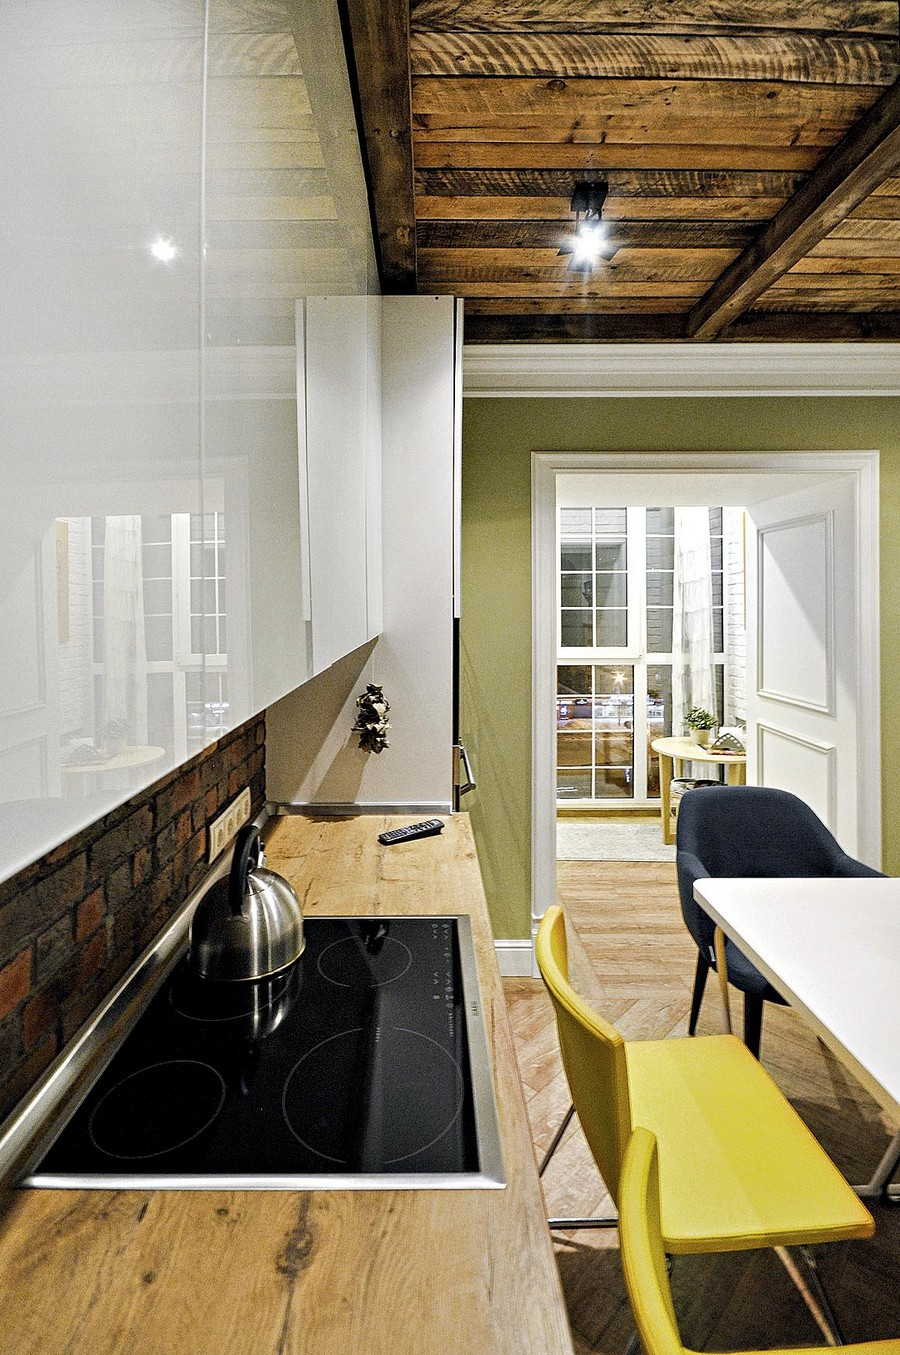 2-kitchen-interior-design-ideas-white-glossy-Scandinavian-style-handleless-cabinets-faux-brick-wall-tiles-backsplash-yellow-gray-dining-chairs-spot-lights-light-parquet-floor-aged-wood-ceiling-balcony-exit